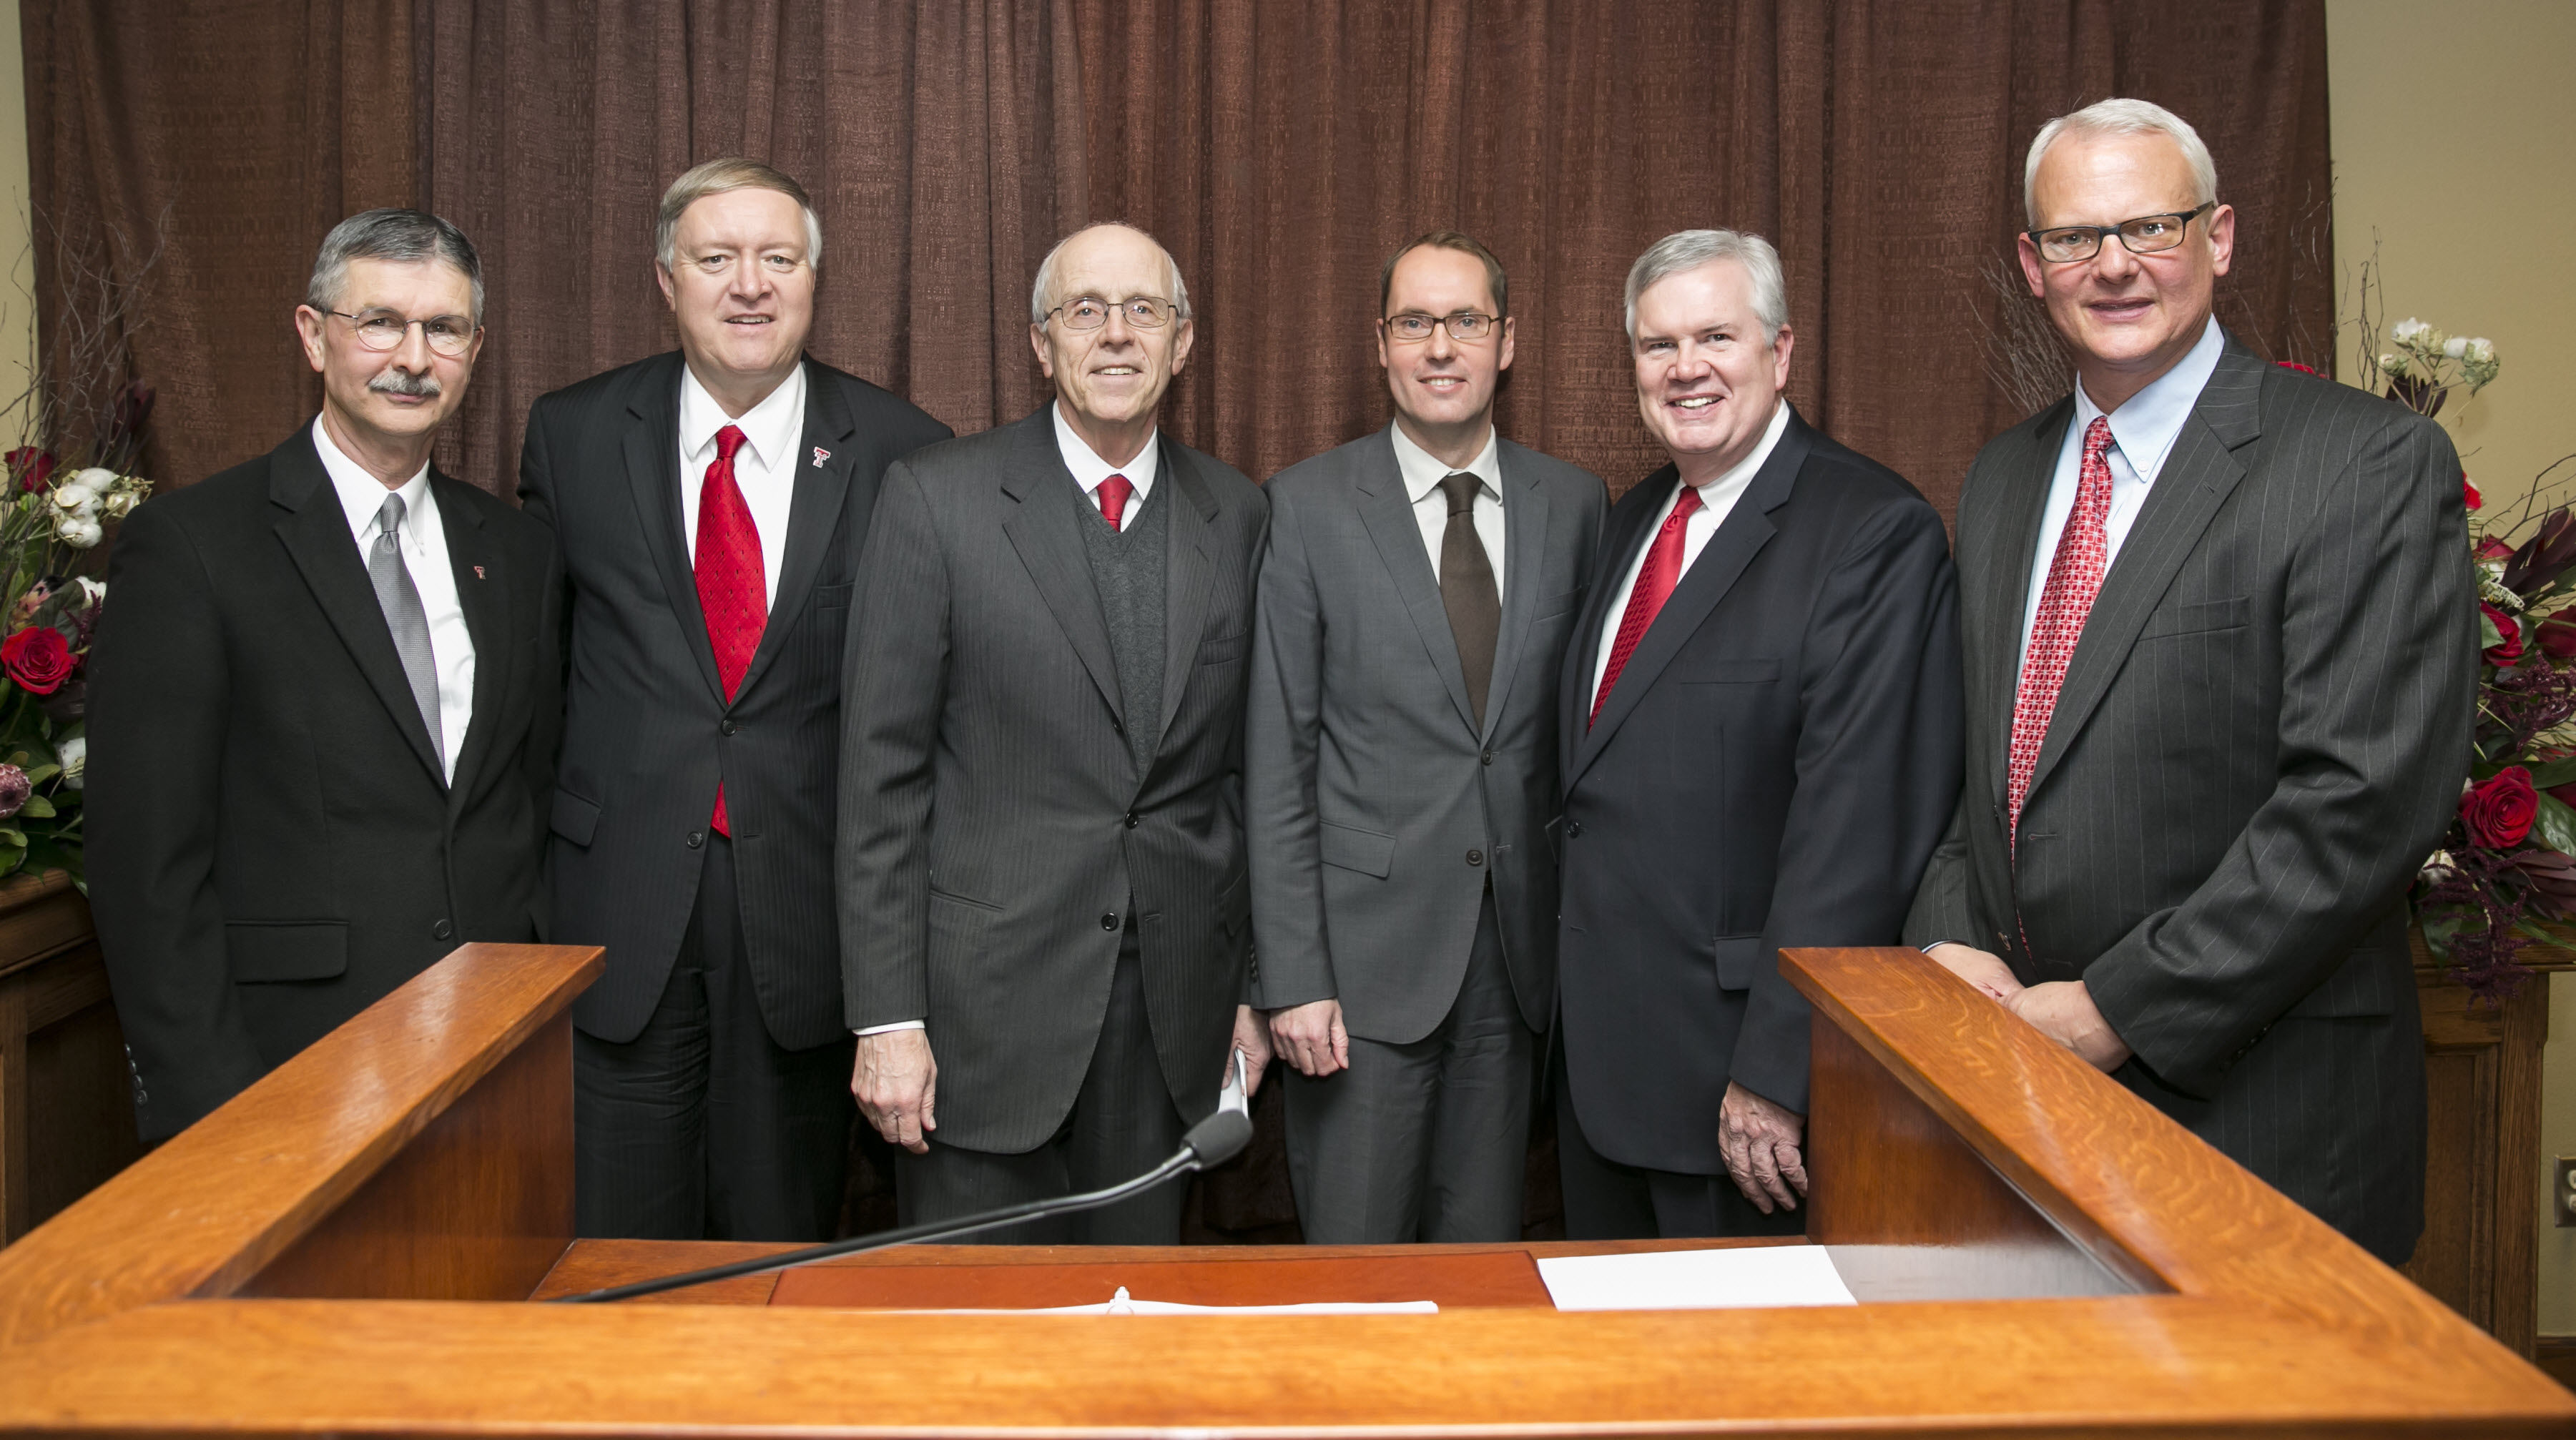 (L to R) Texas Tech University Dean, Michael Galyean; Texas Tech University   President, Duane Nellis, Frank Terhorst, Bayer CropScience Global Head of   Seeds, Mike Gilbert Head of Global Breeding and Trait Development,  Bayer CropScience Lee Rivenbark Head of Global Cotton and US Seed   Operations